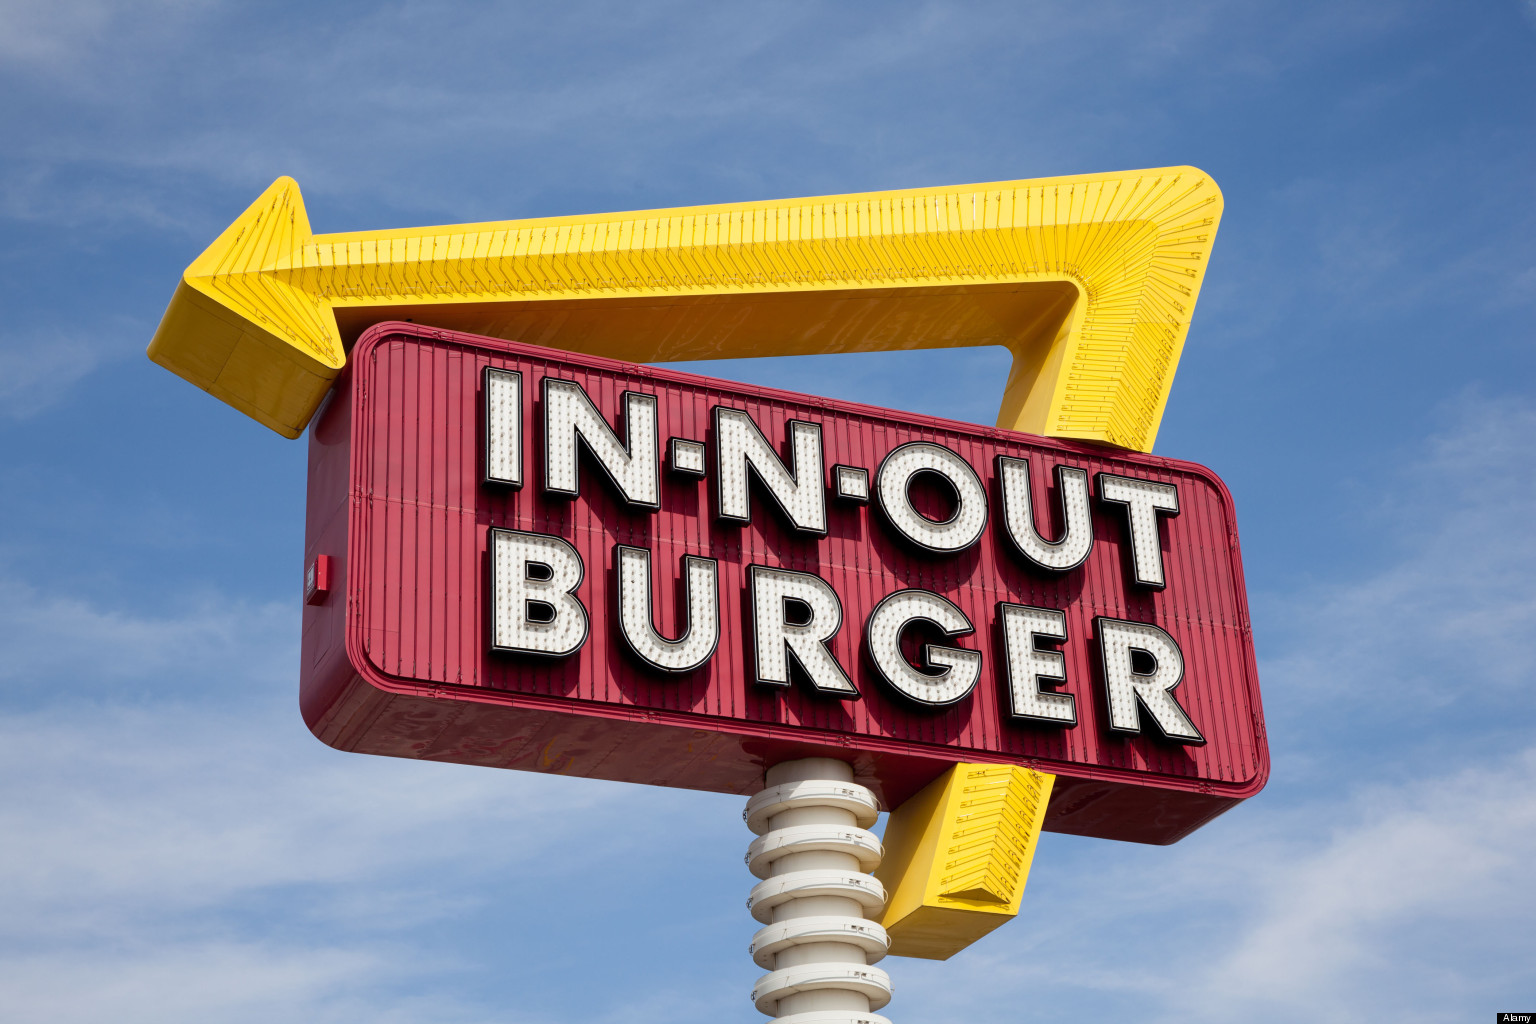 A classic IN-N-OUT BURGER sign in front of blue sky with yellow arrow